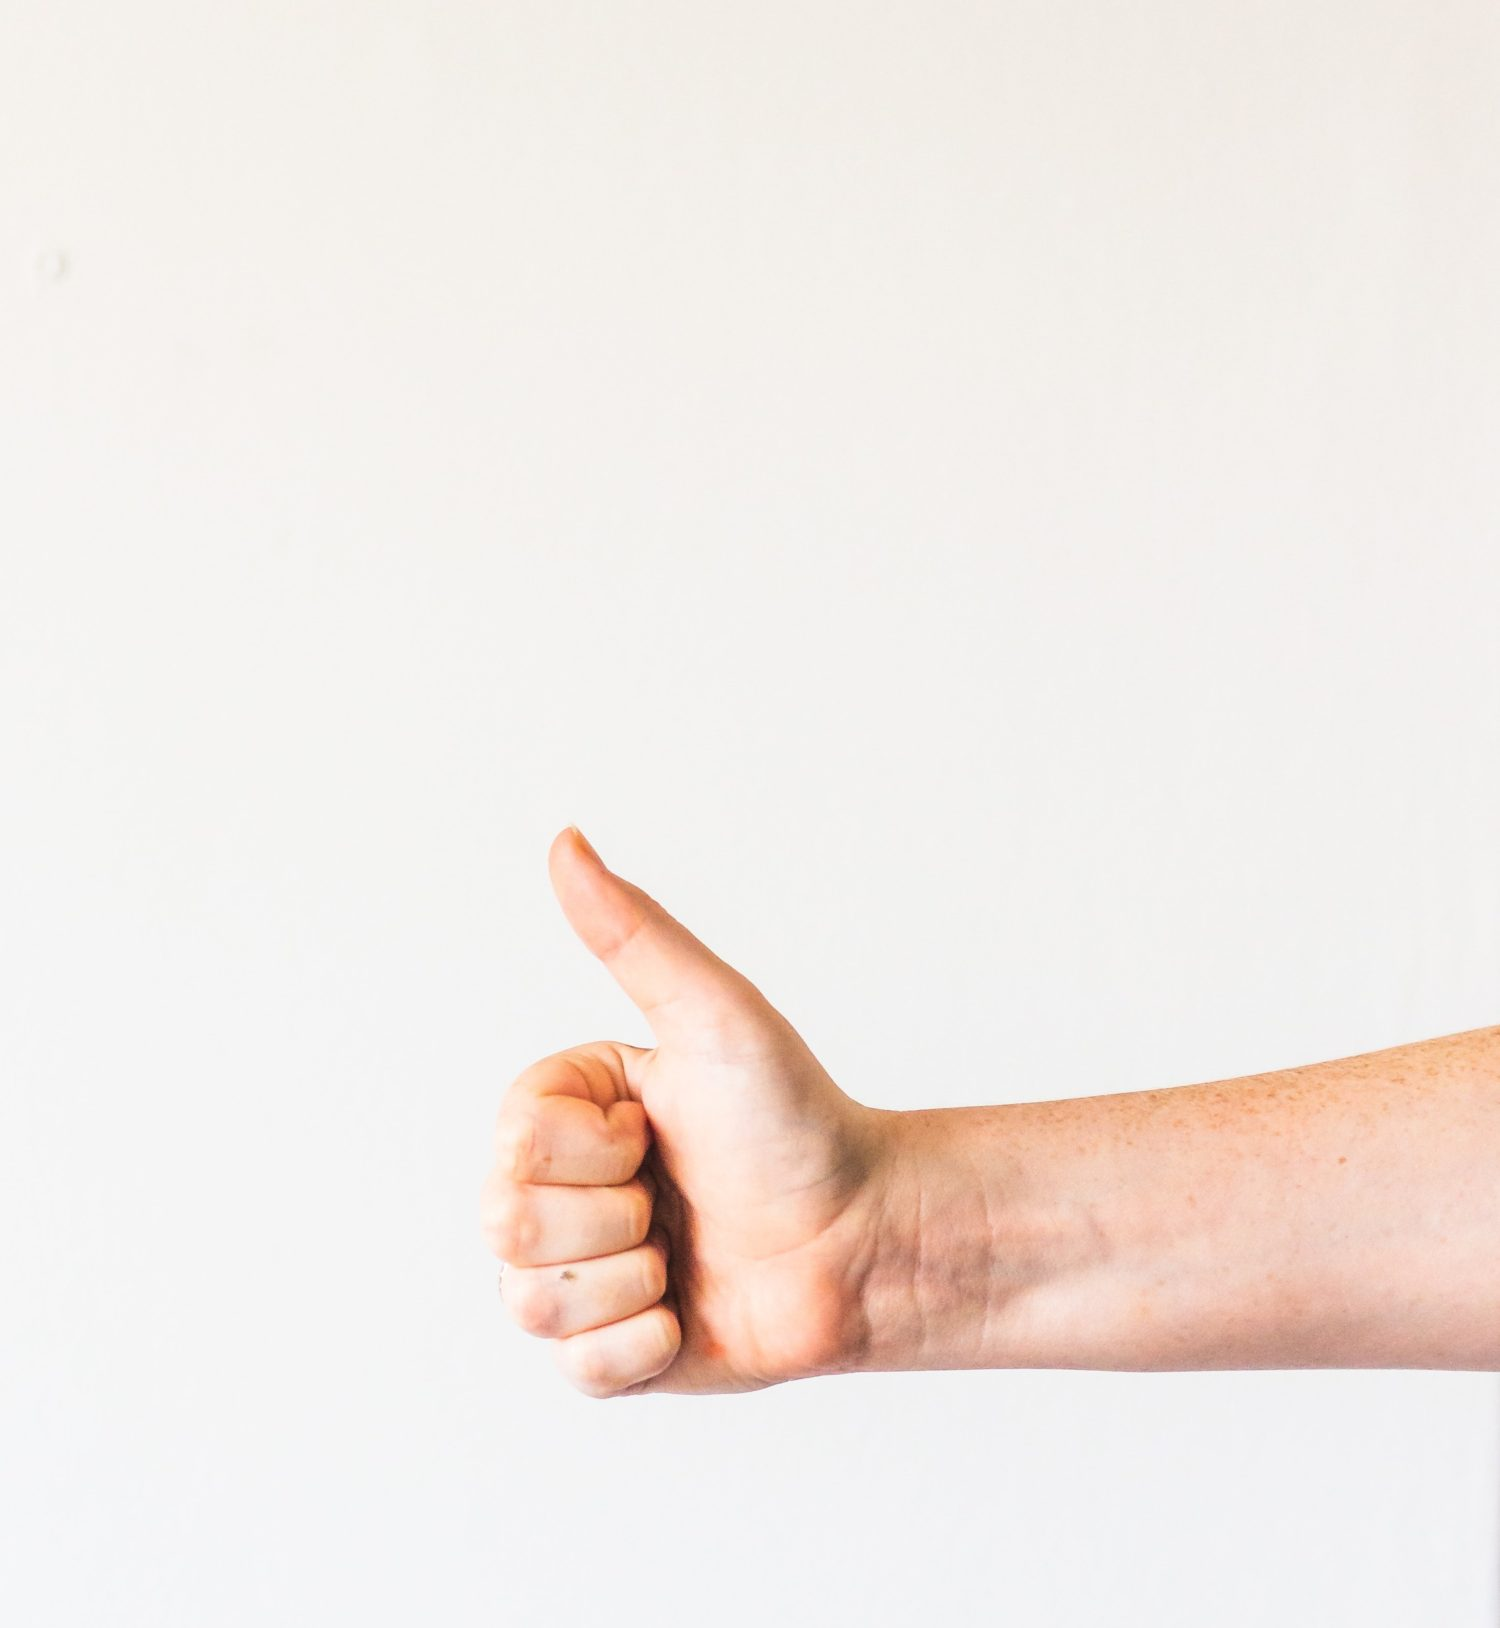 Thumbs up for coaching remote teams.